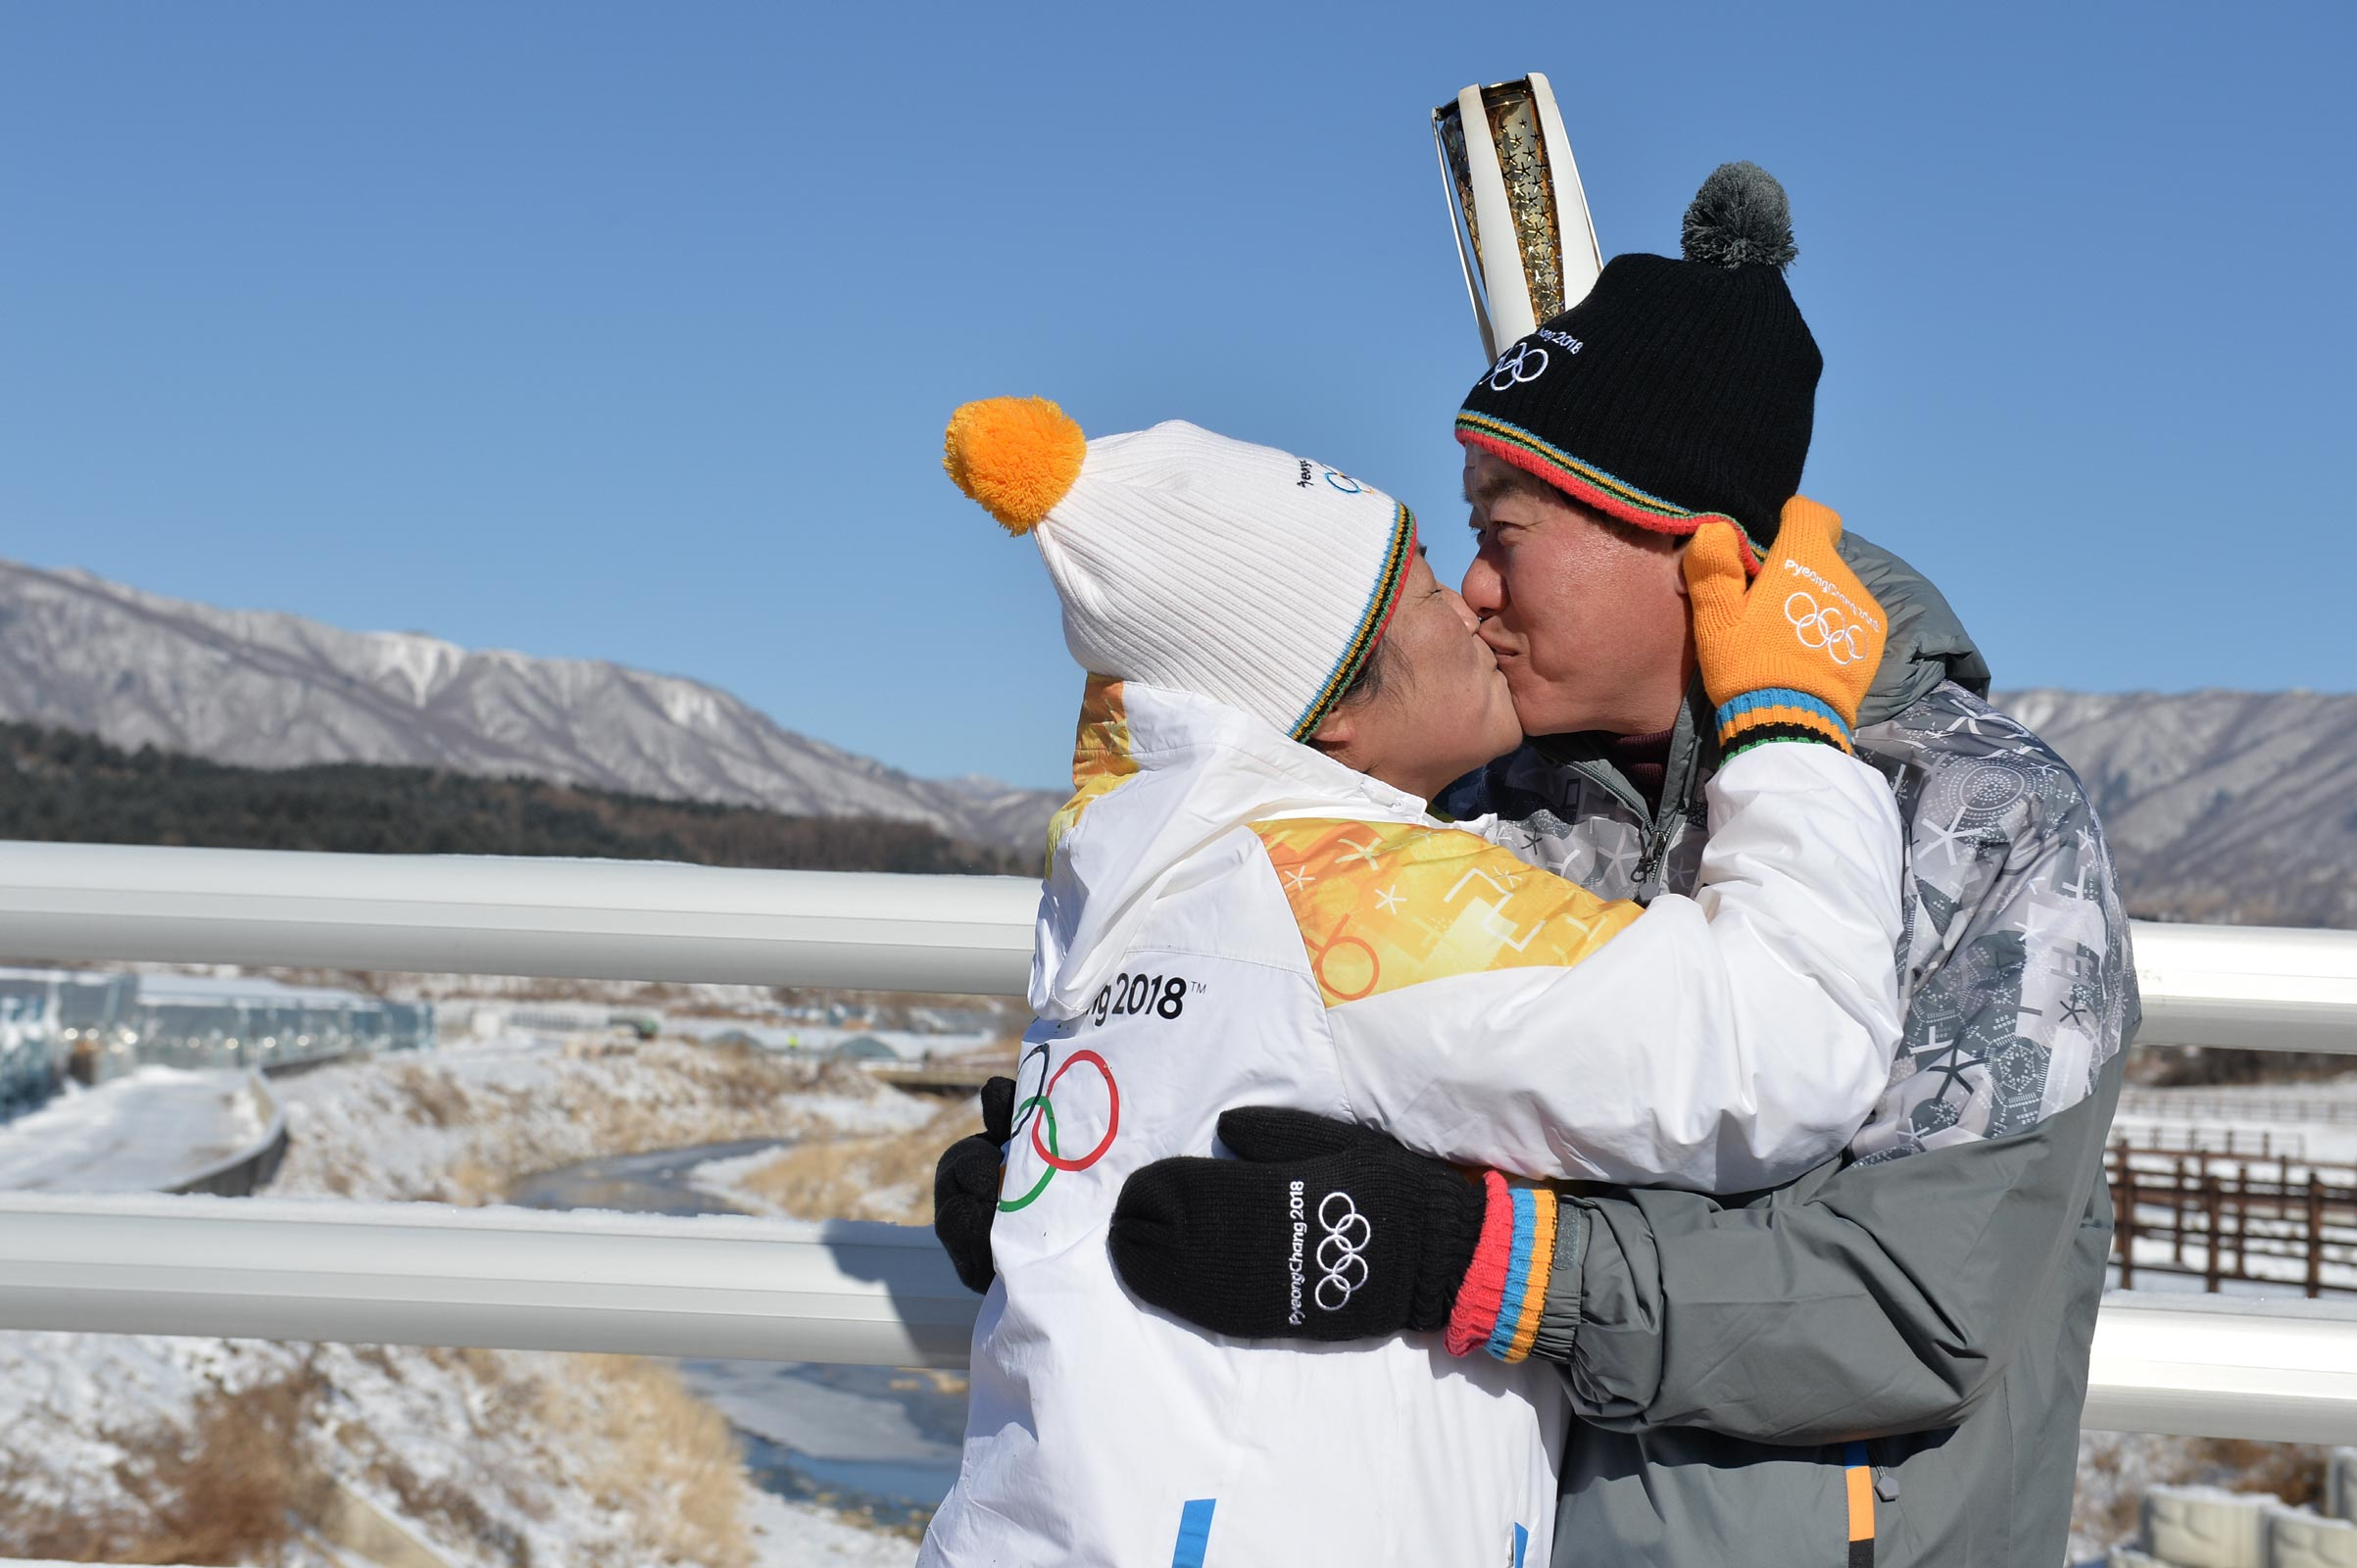 PyeongChang 2018 Olympic Torch Relay - Day 84